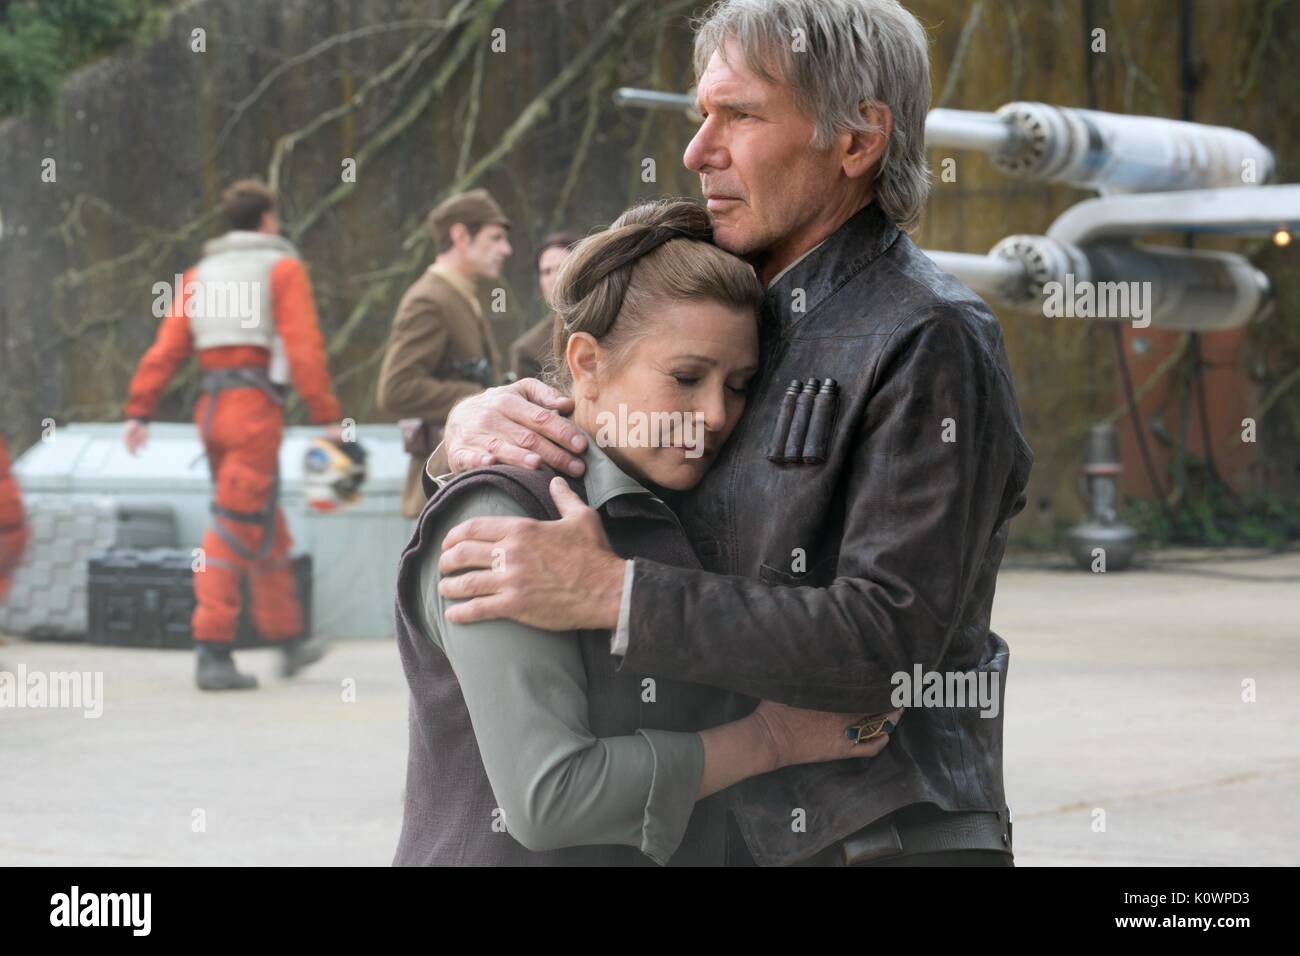 CARRIE FISHER & HARRISON FORD STAR WARS: EPISODE VII - THE FORCE AWAKENS (2015) - Stock Image